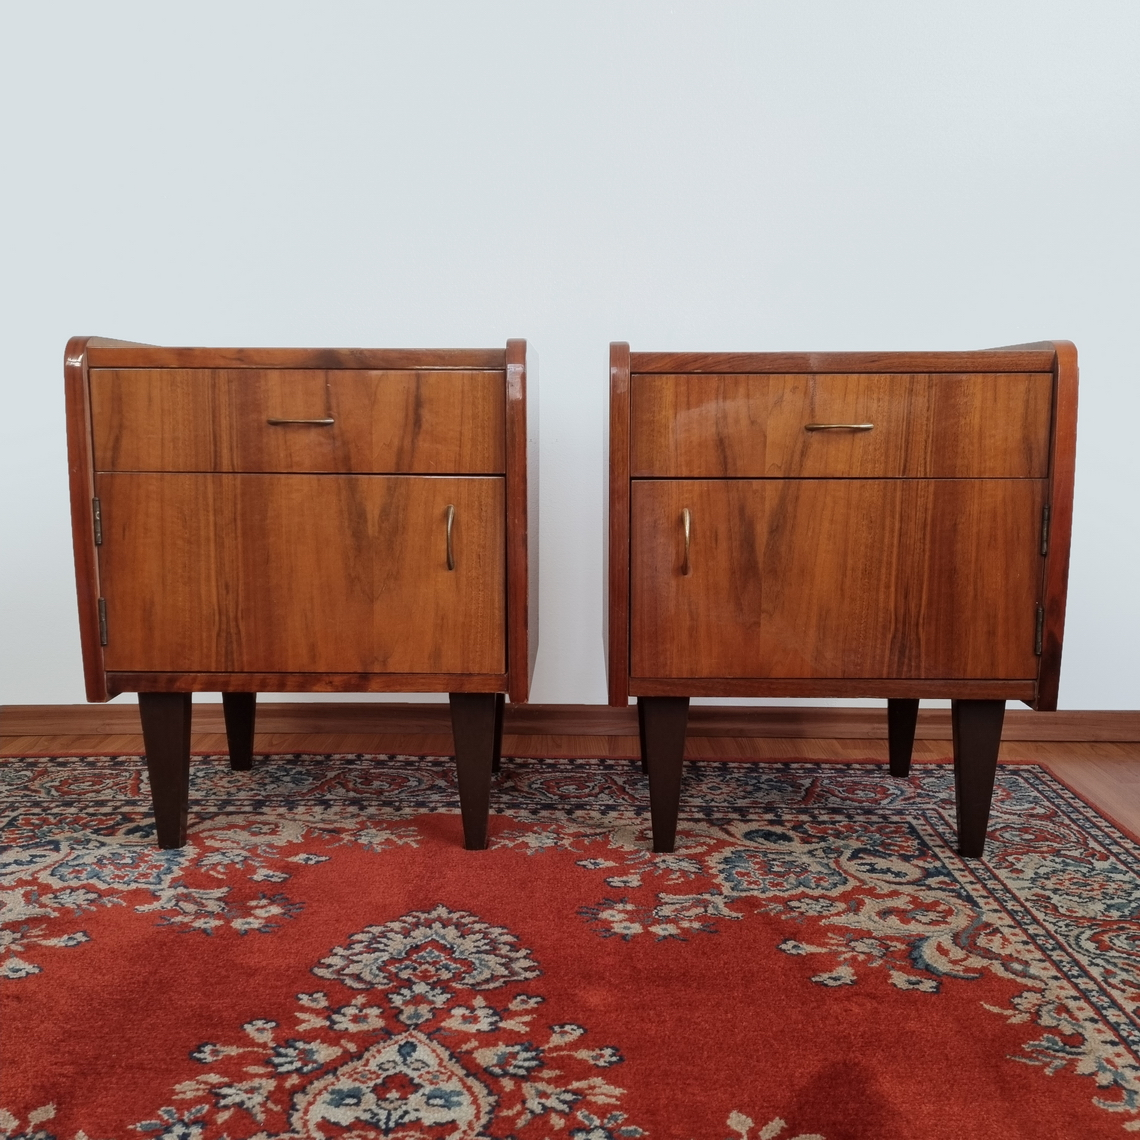 Pair Of Midcentury Modern Nightstands, Vintage Bedside Tables, Yugoslavia 60s